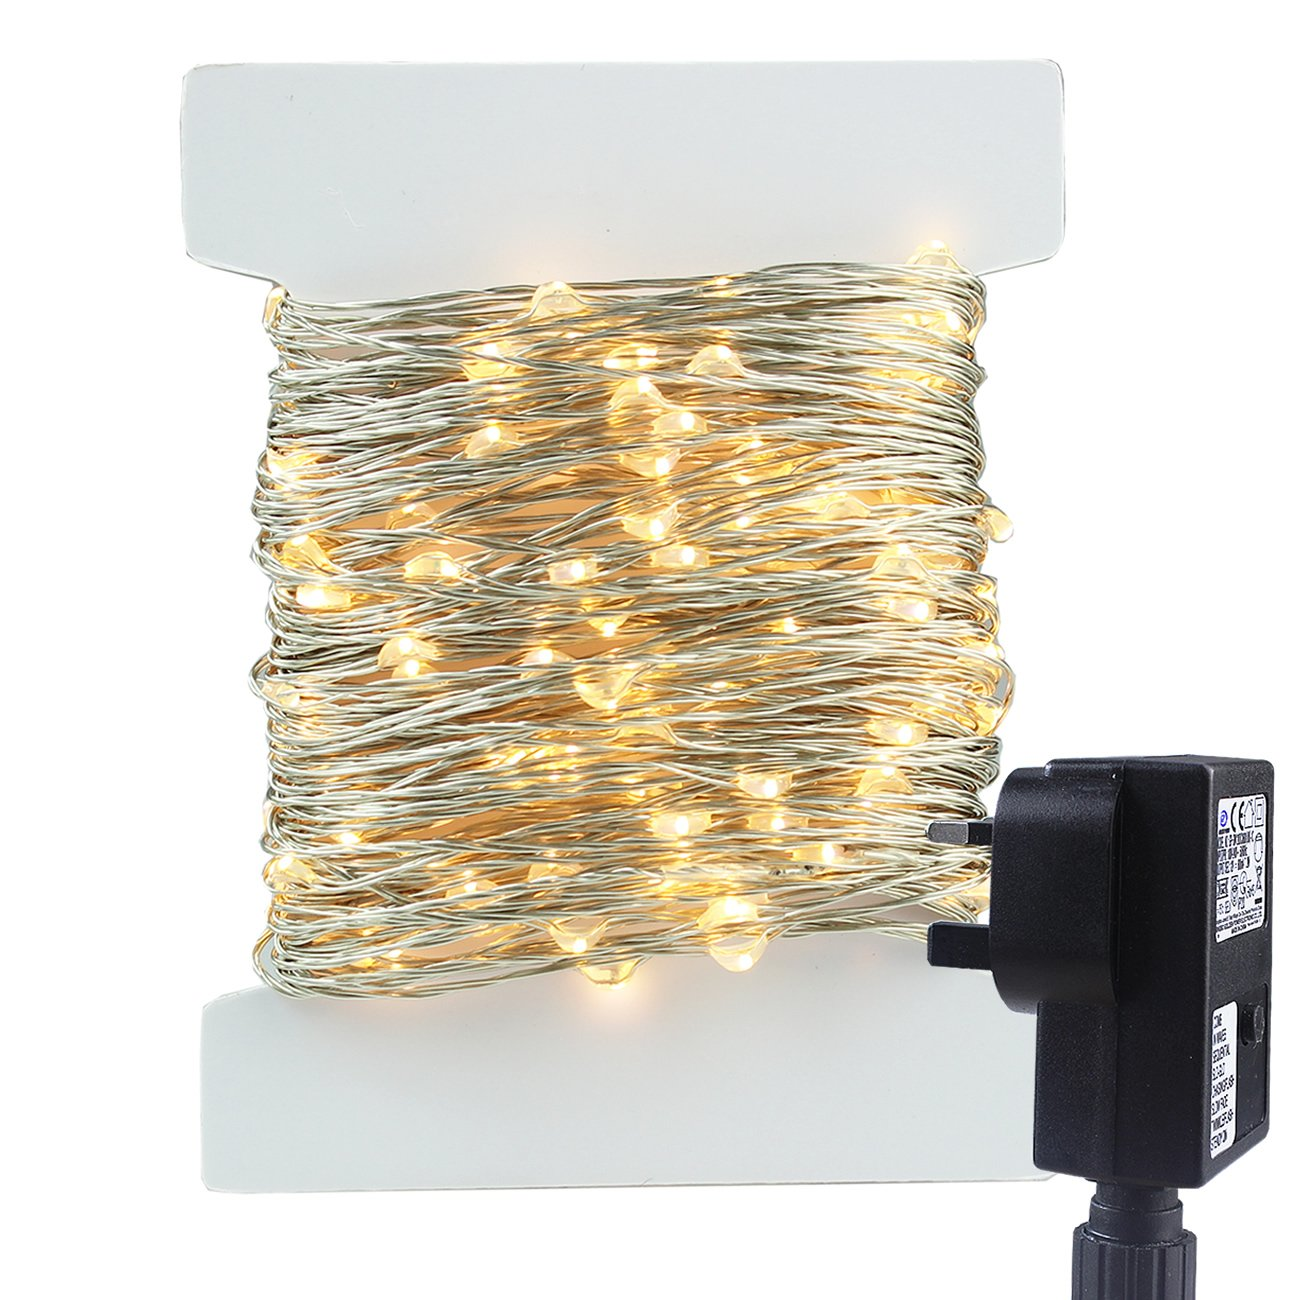 RPGT 200 LED String Light 20M Silver Copper Wire Fairy Starry Lights 8 Modes With Safe Extra Low Voltage Power Adapter Indoor and Outdoor for Home DIY, Wedding, Christmas Tree, Holiday, Party, Garden, Festival Decoration (200LEDs, Warmwhite)